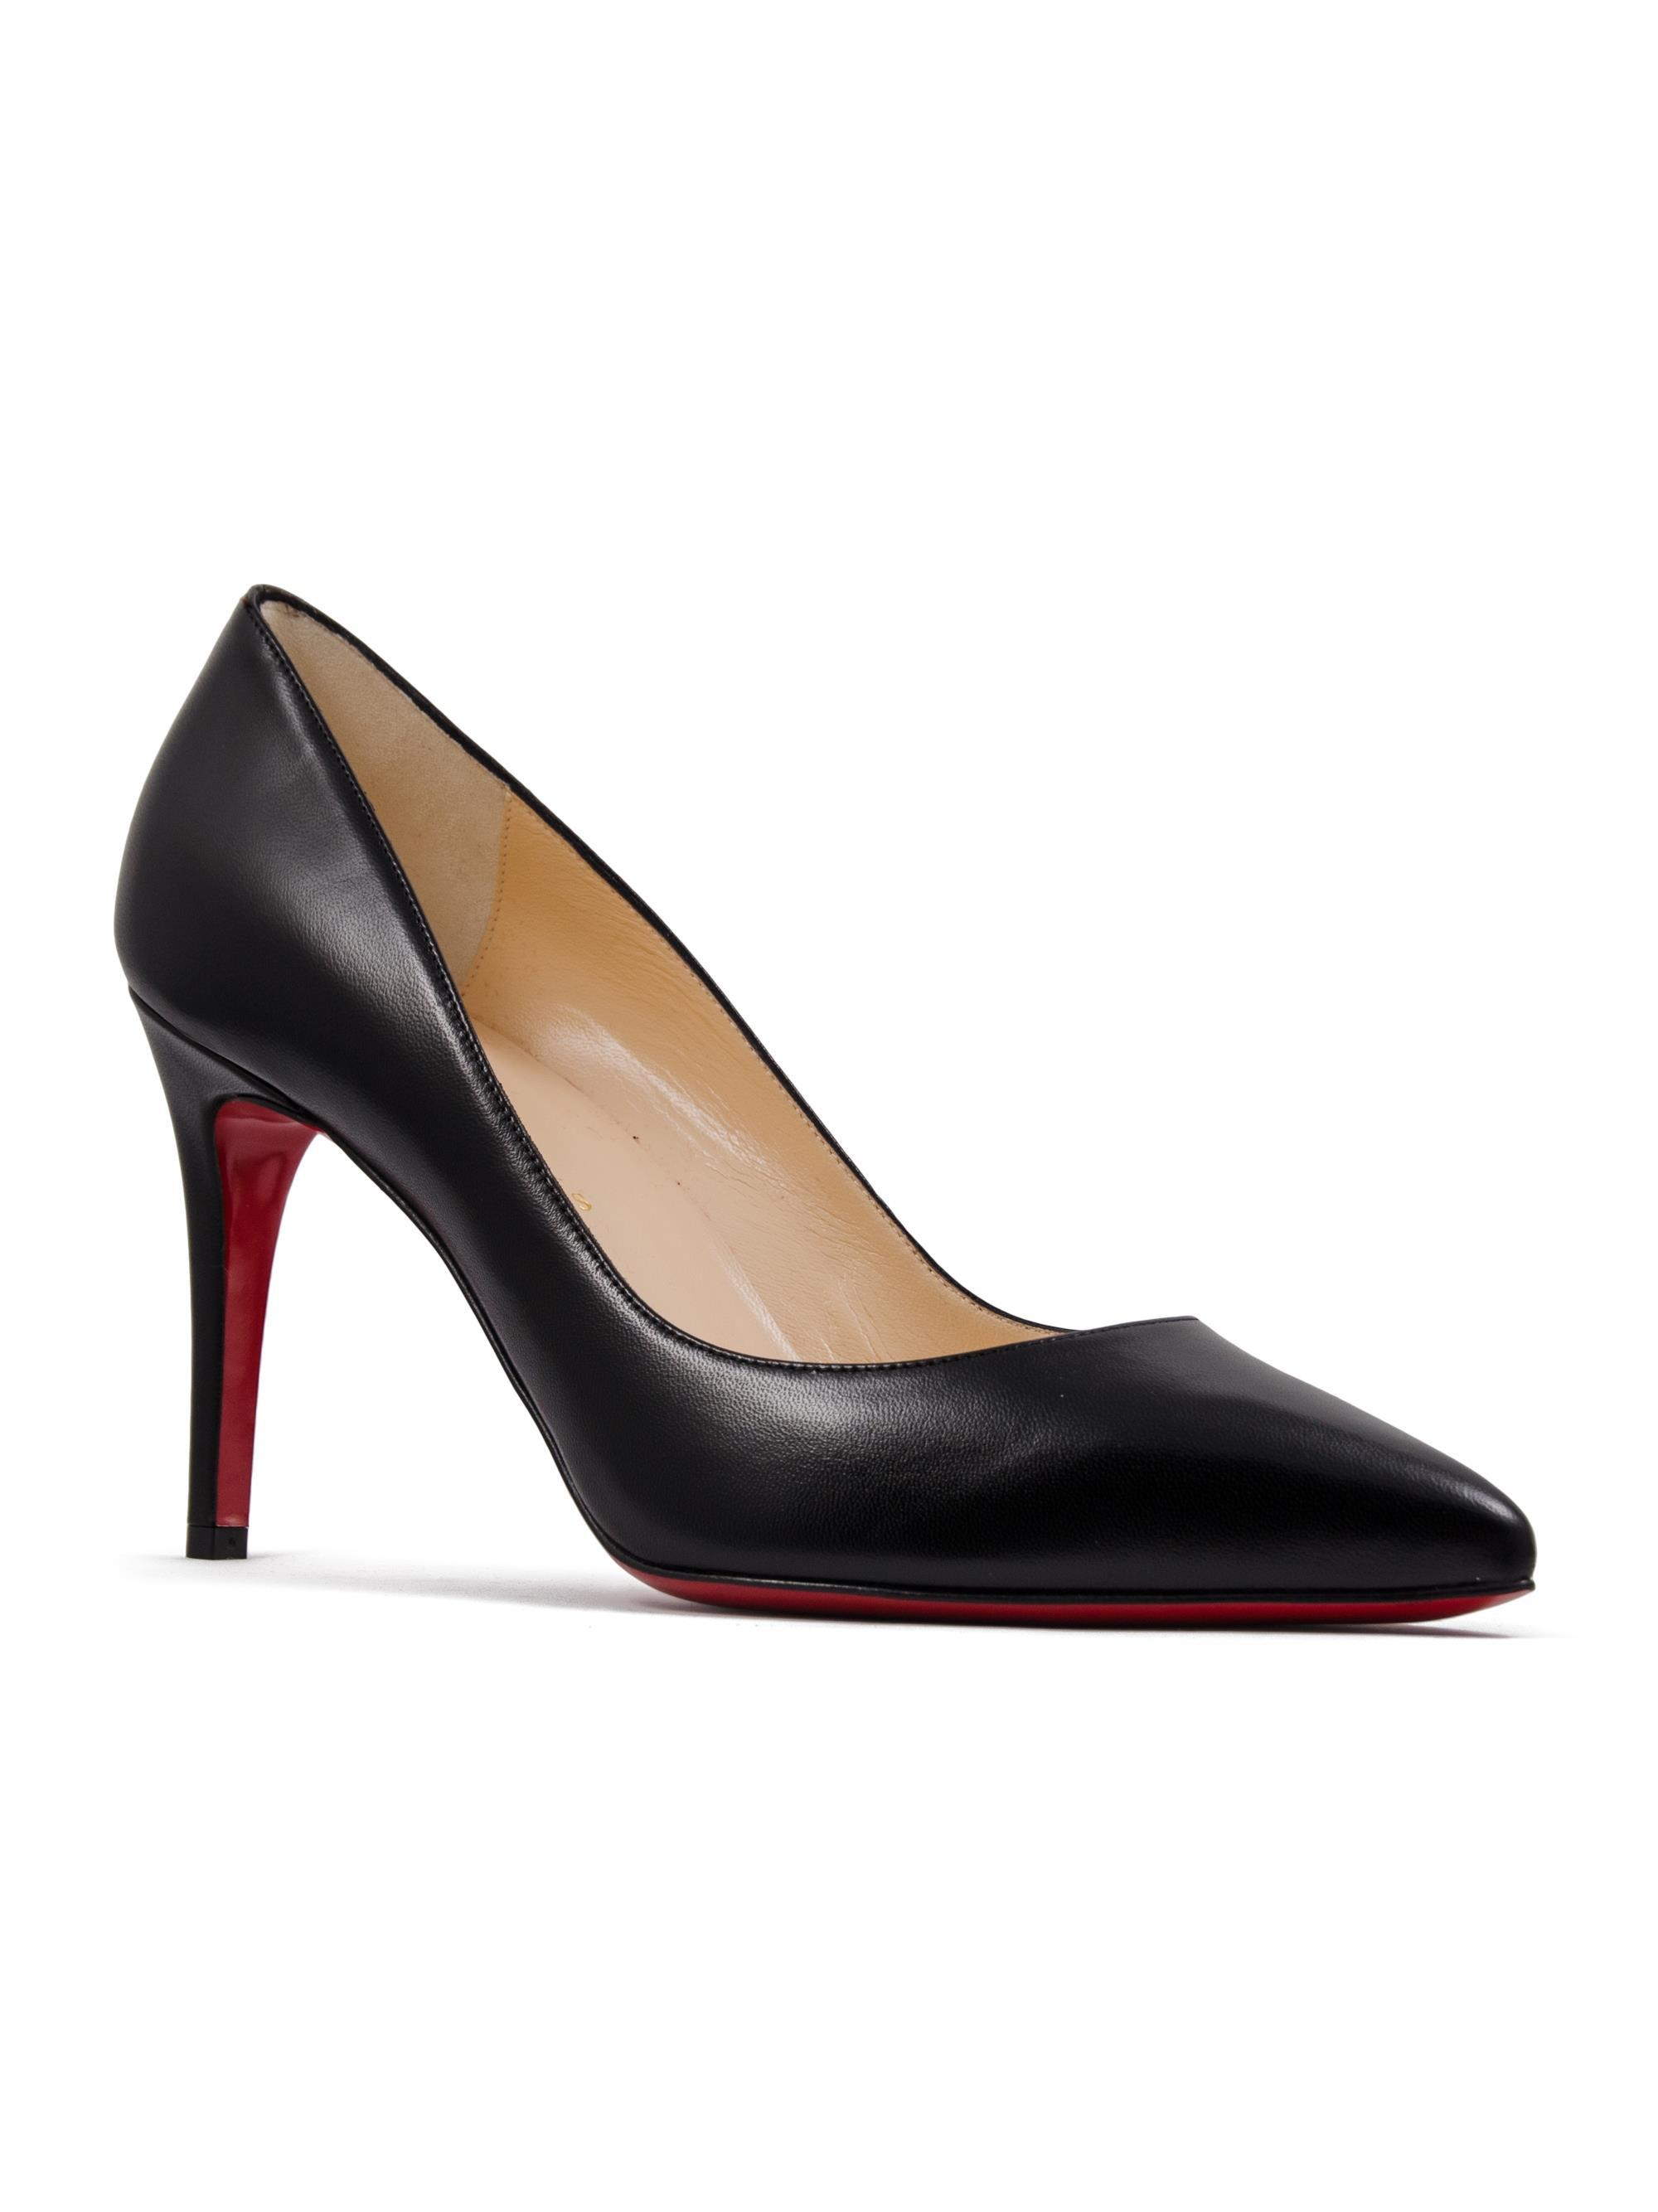 reputable site 390c4 7a688 Christian Louboutin Black Pigalle Nappa Shiny